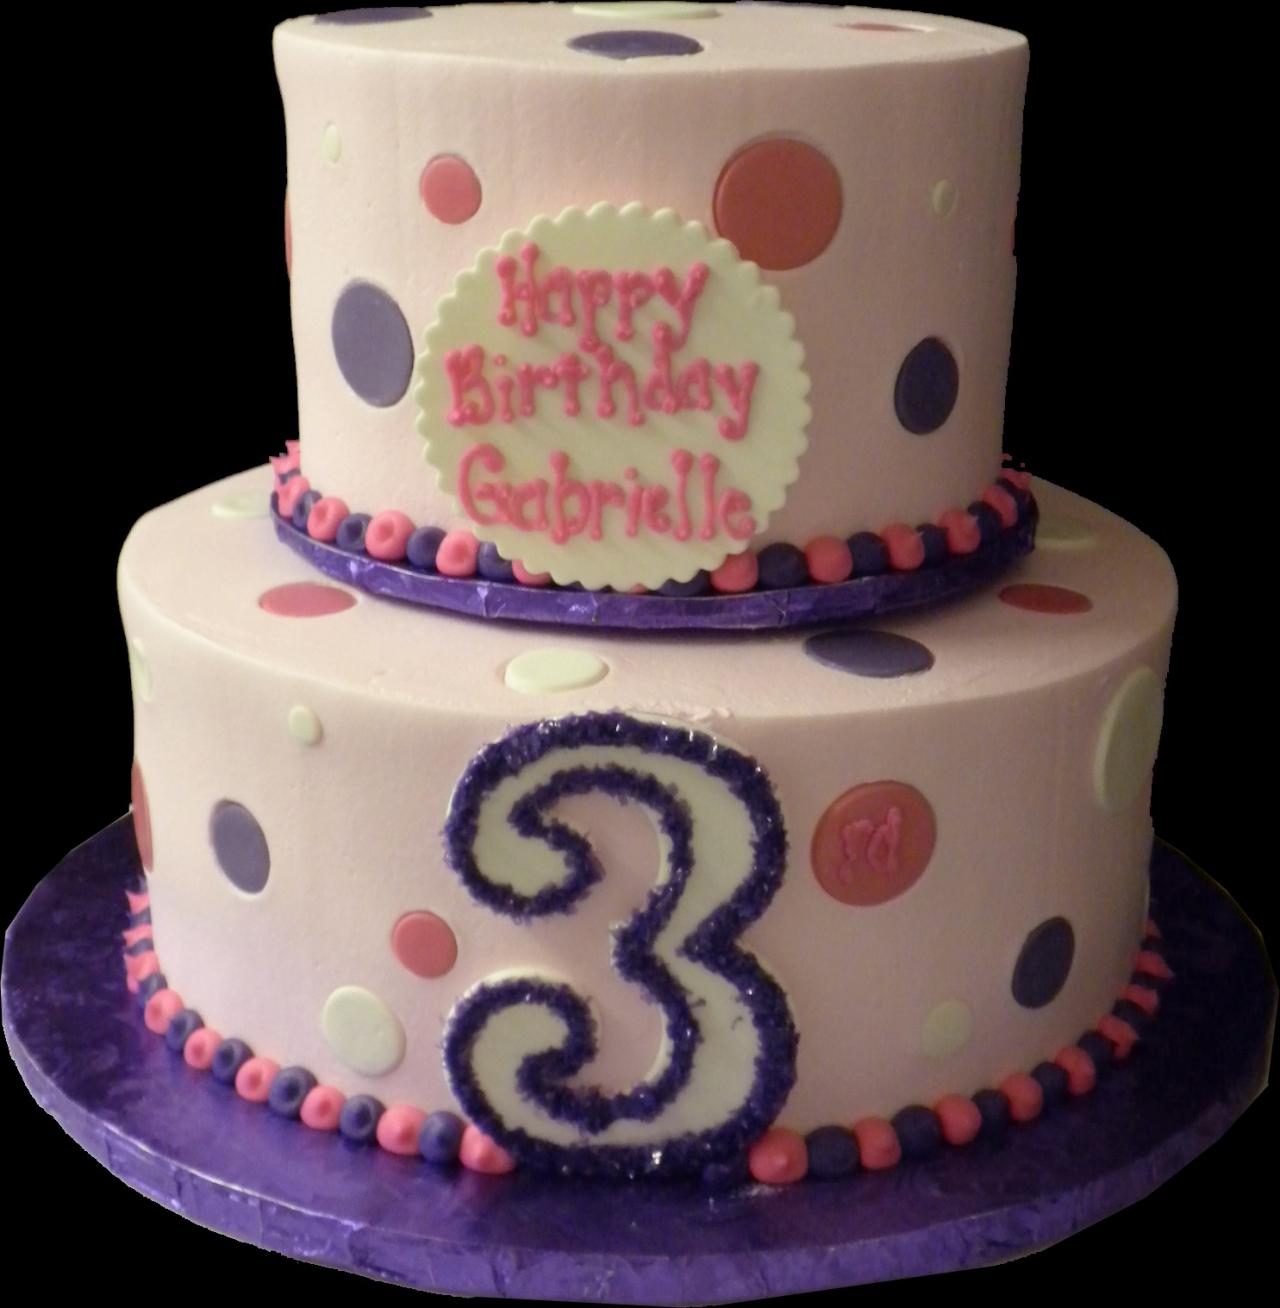 Polka Dots 3rd Birthday Cake Pink Buttercream Iced Round 2 Tiers Decorated With